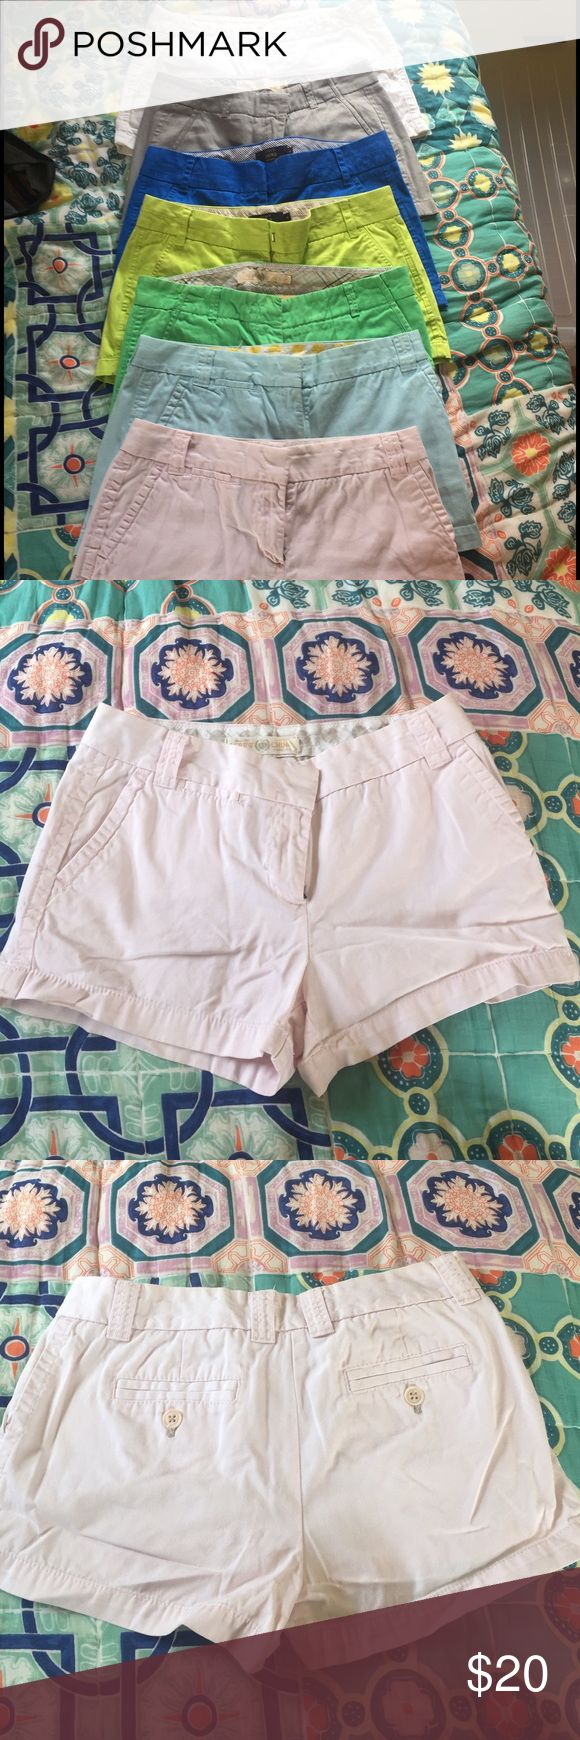 J. Crew light pink shorts Chino shorts in light pink. Great condition - perfect summer shorts to pair with any top. Many other colors for sale. J. Crew Shorts